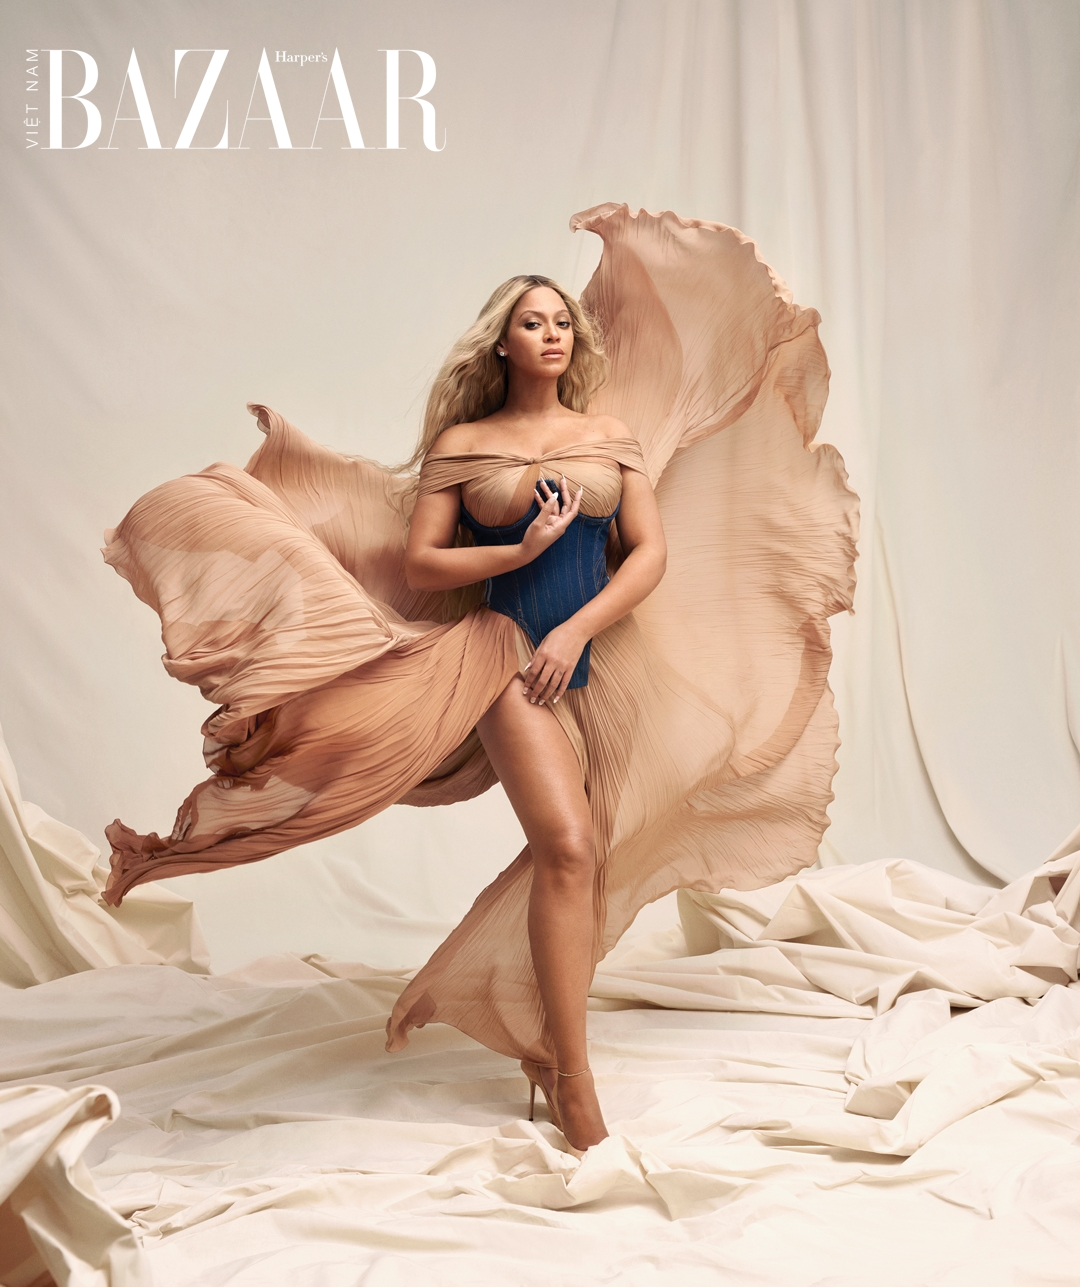 HBZ090121WELLCoverStory_003_beyonce